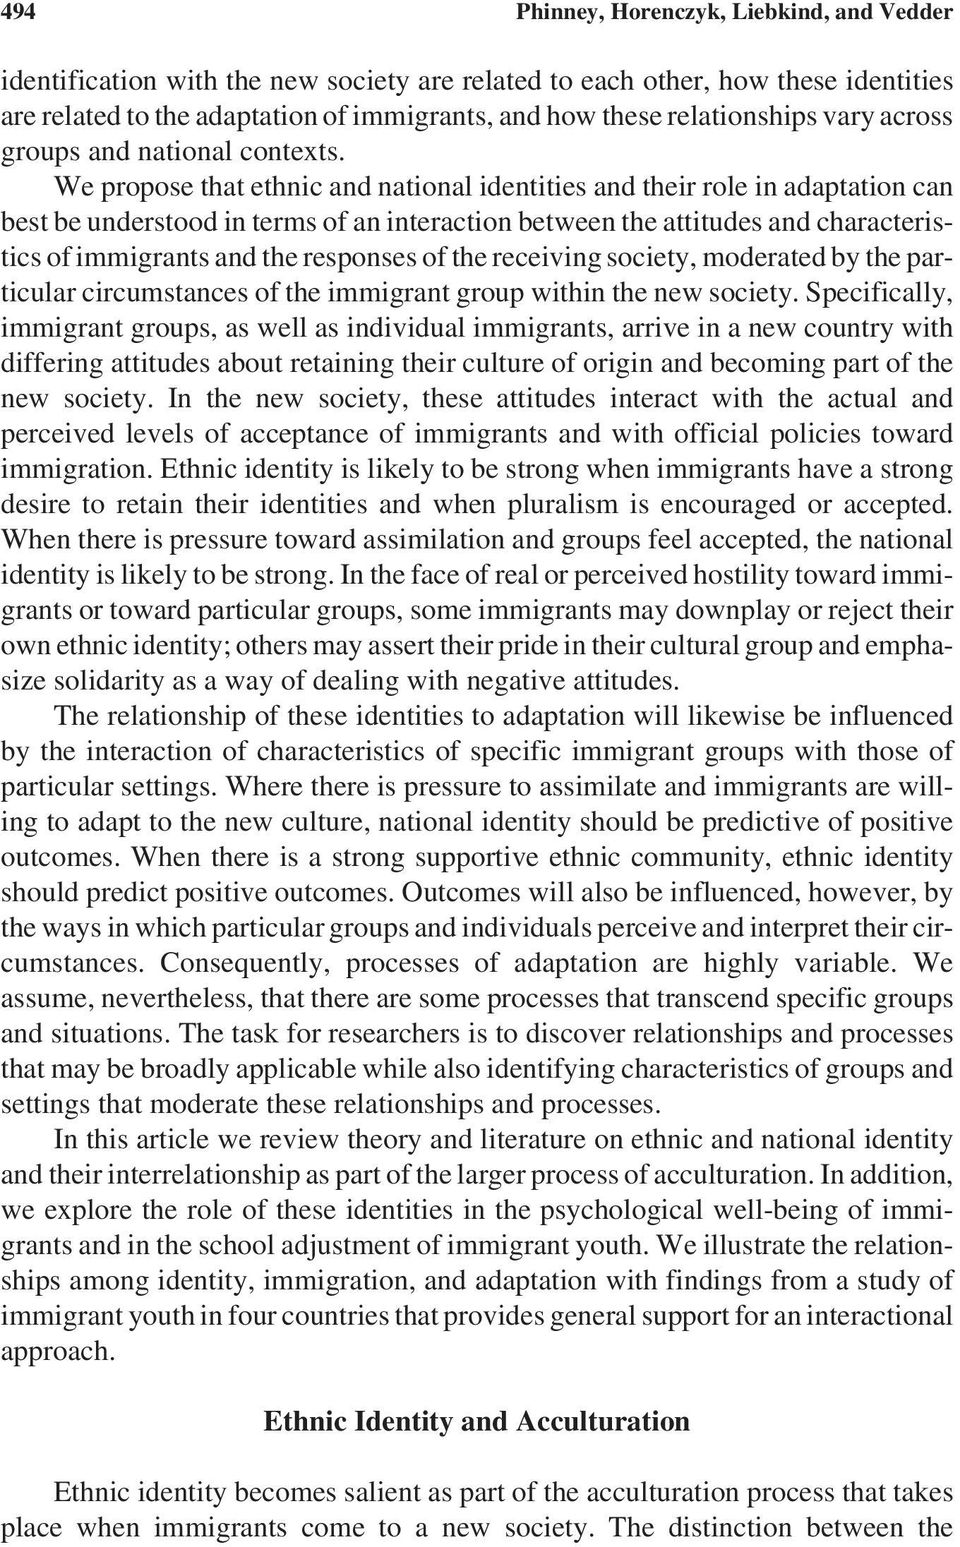 We propose that ethnic and national identities and their role in adaptation can best be understood in terms of an interaction between the attitudes and characteristics of immigrants and the responses